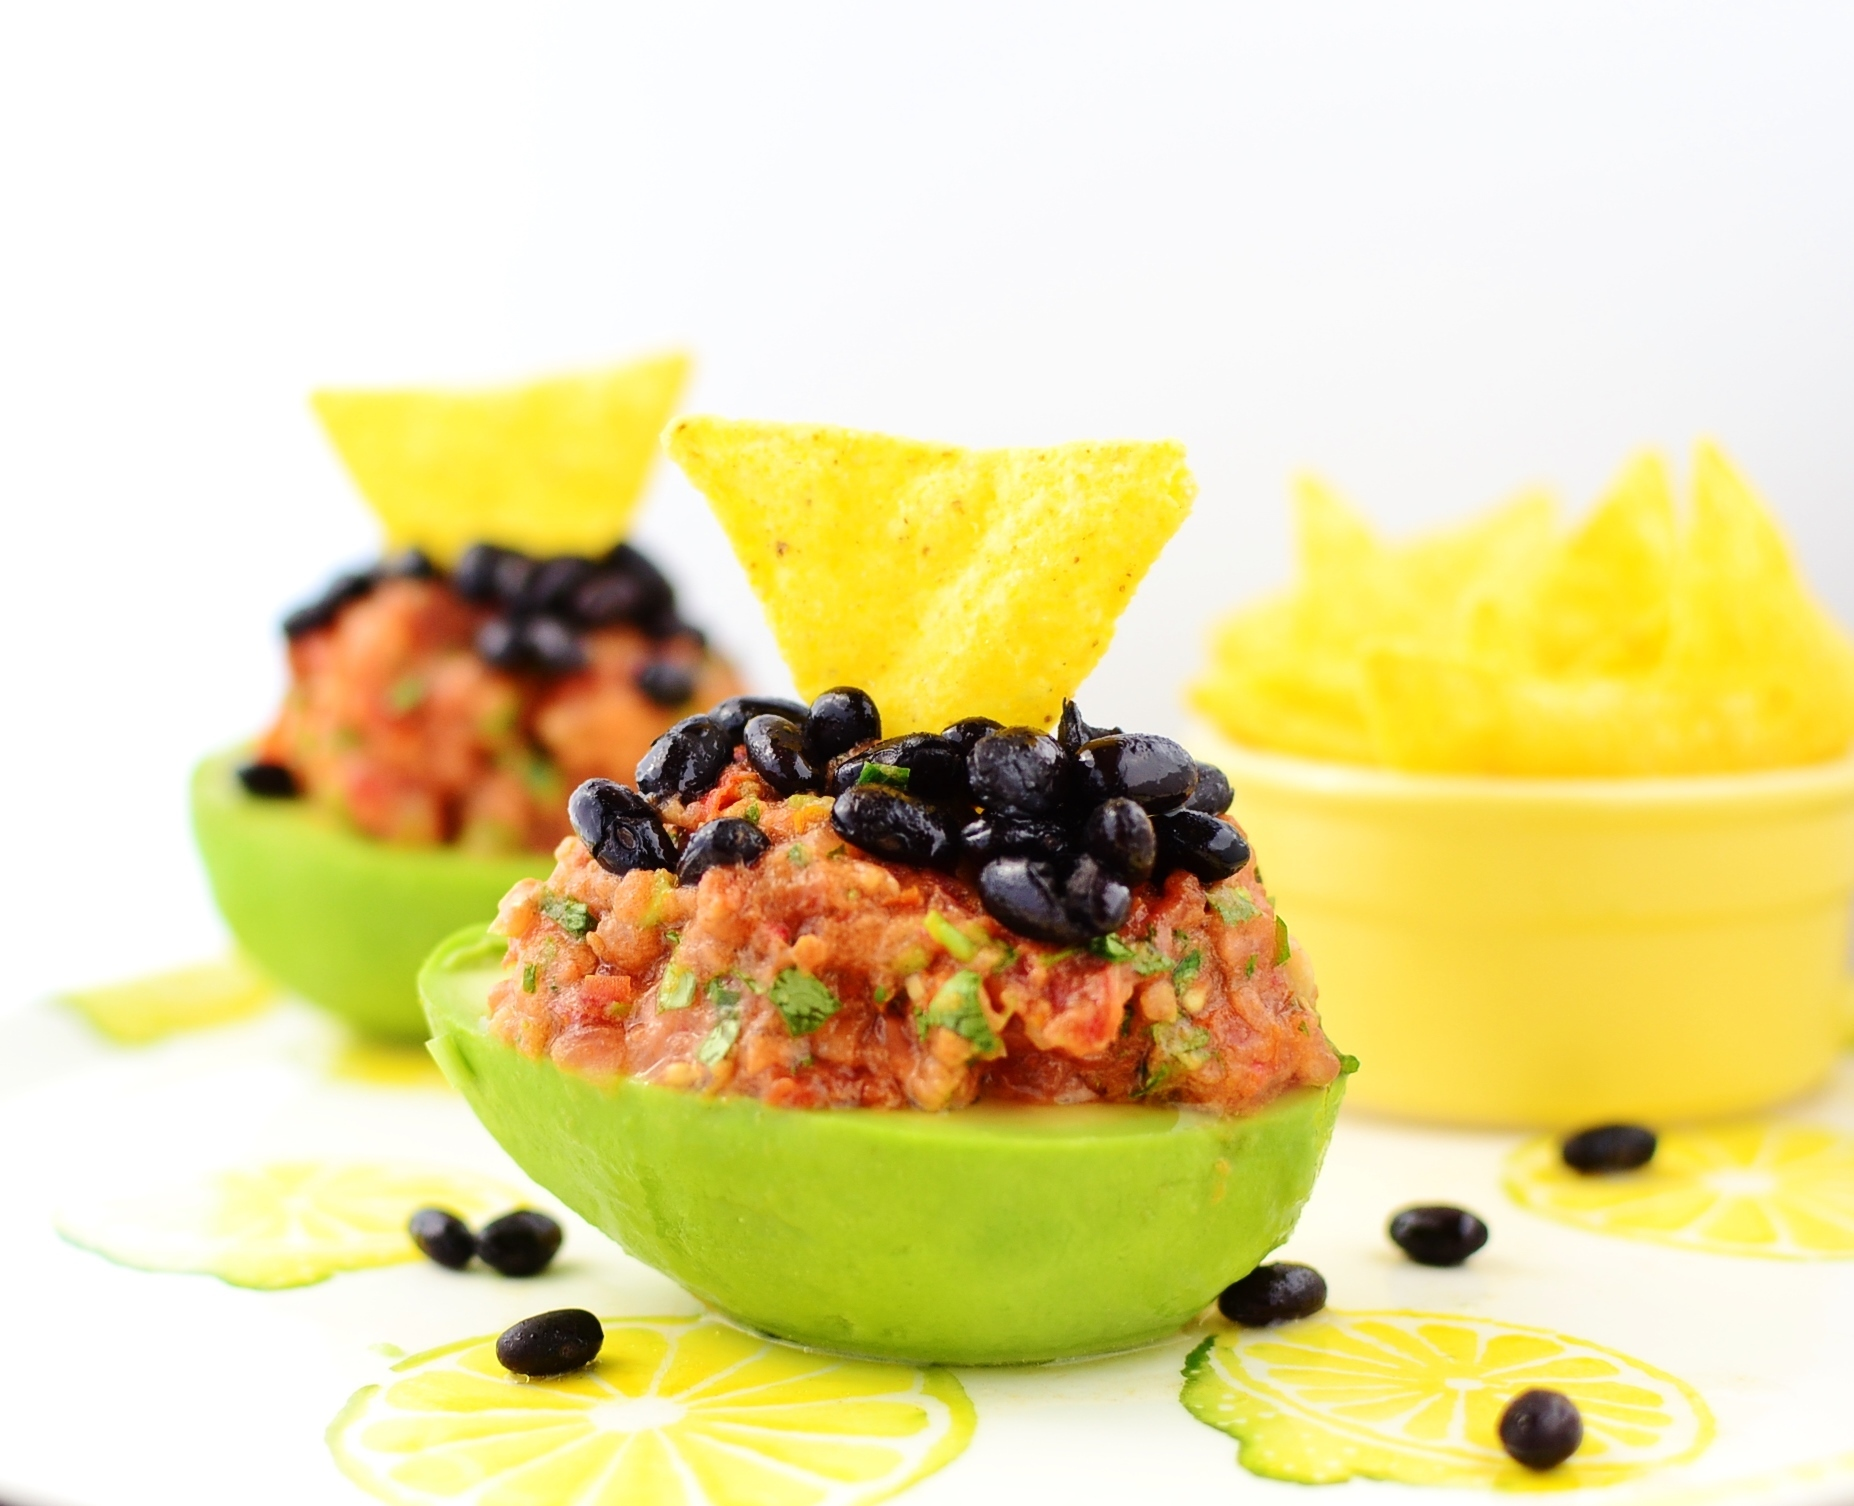 Avocado with salsa and black beans